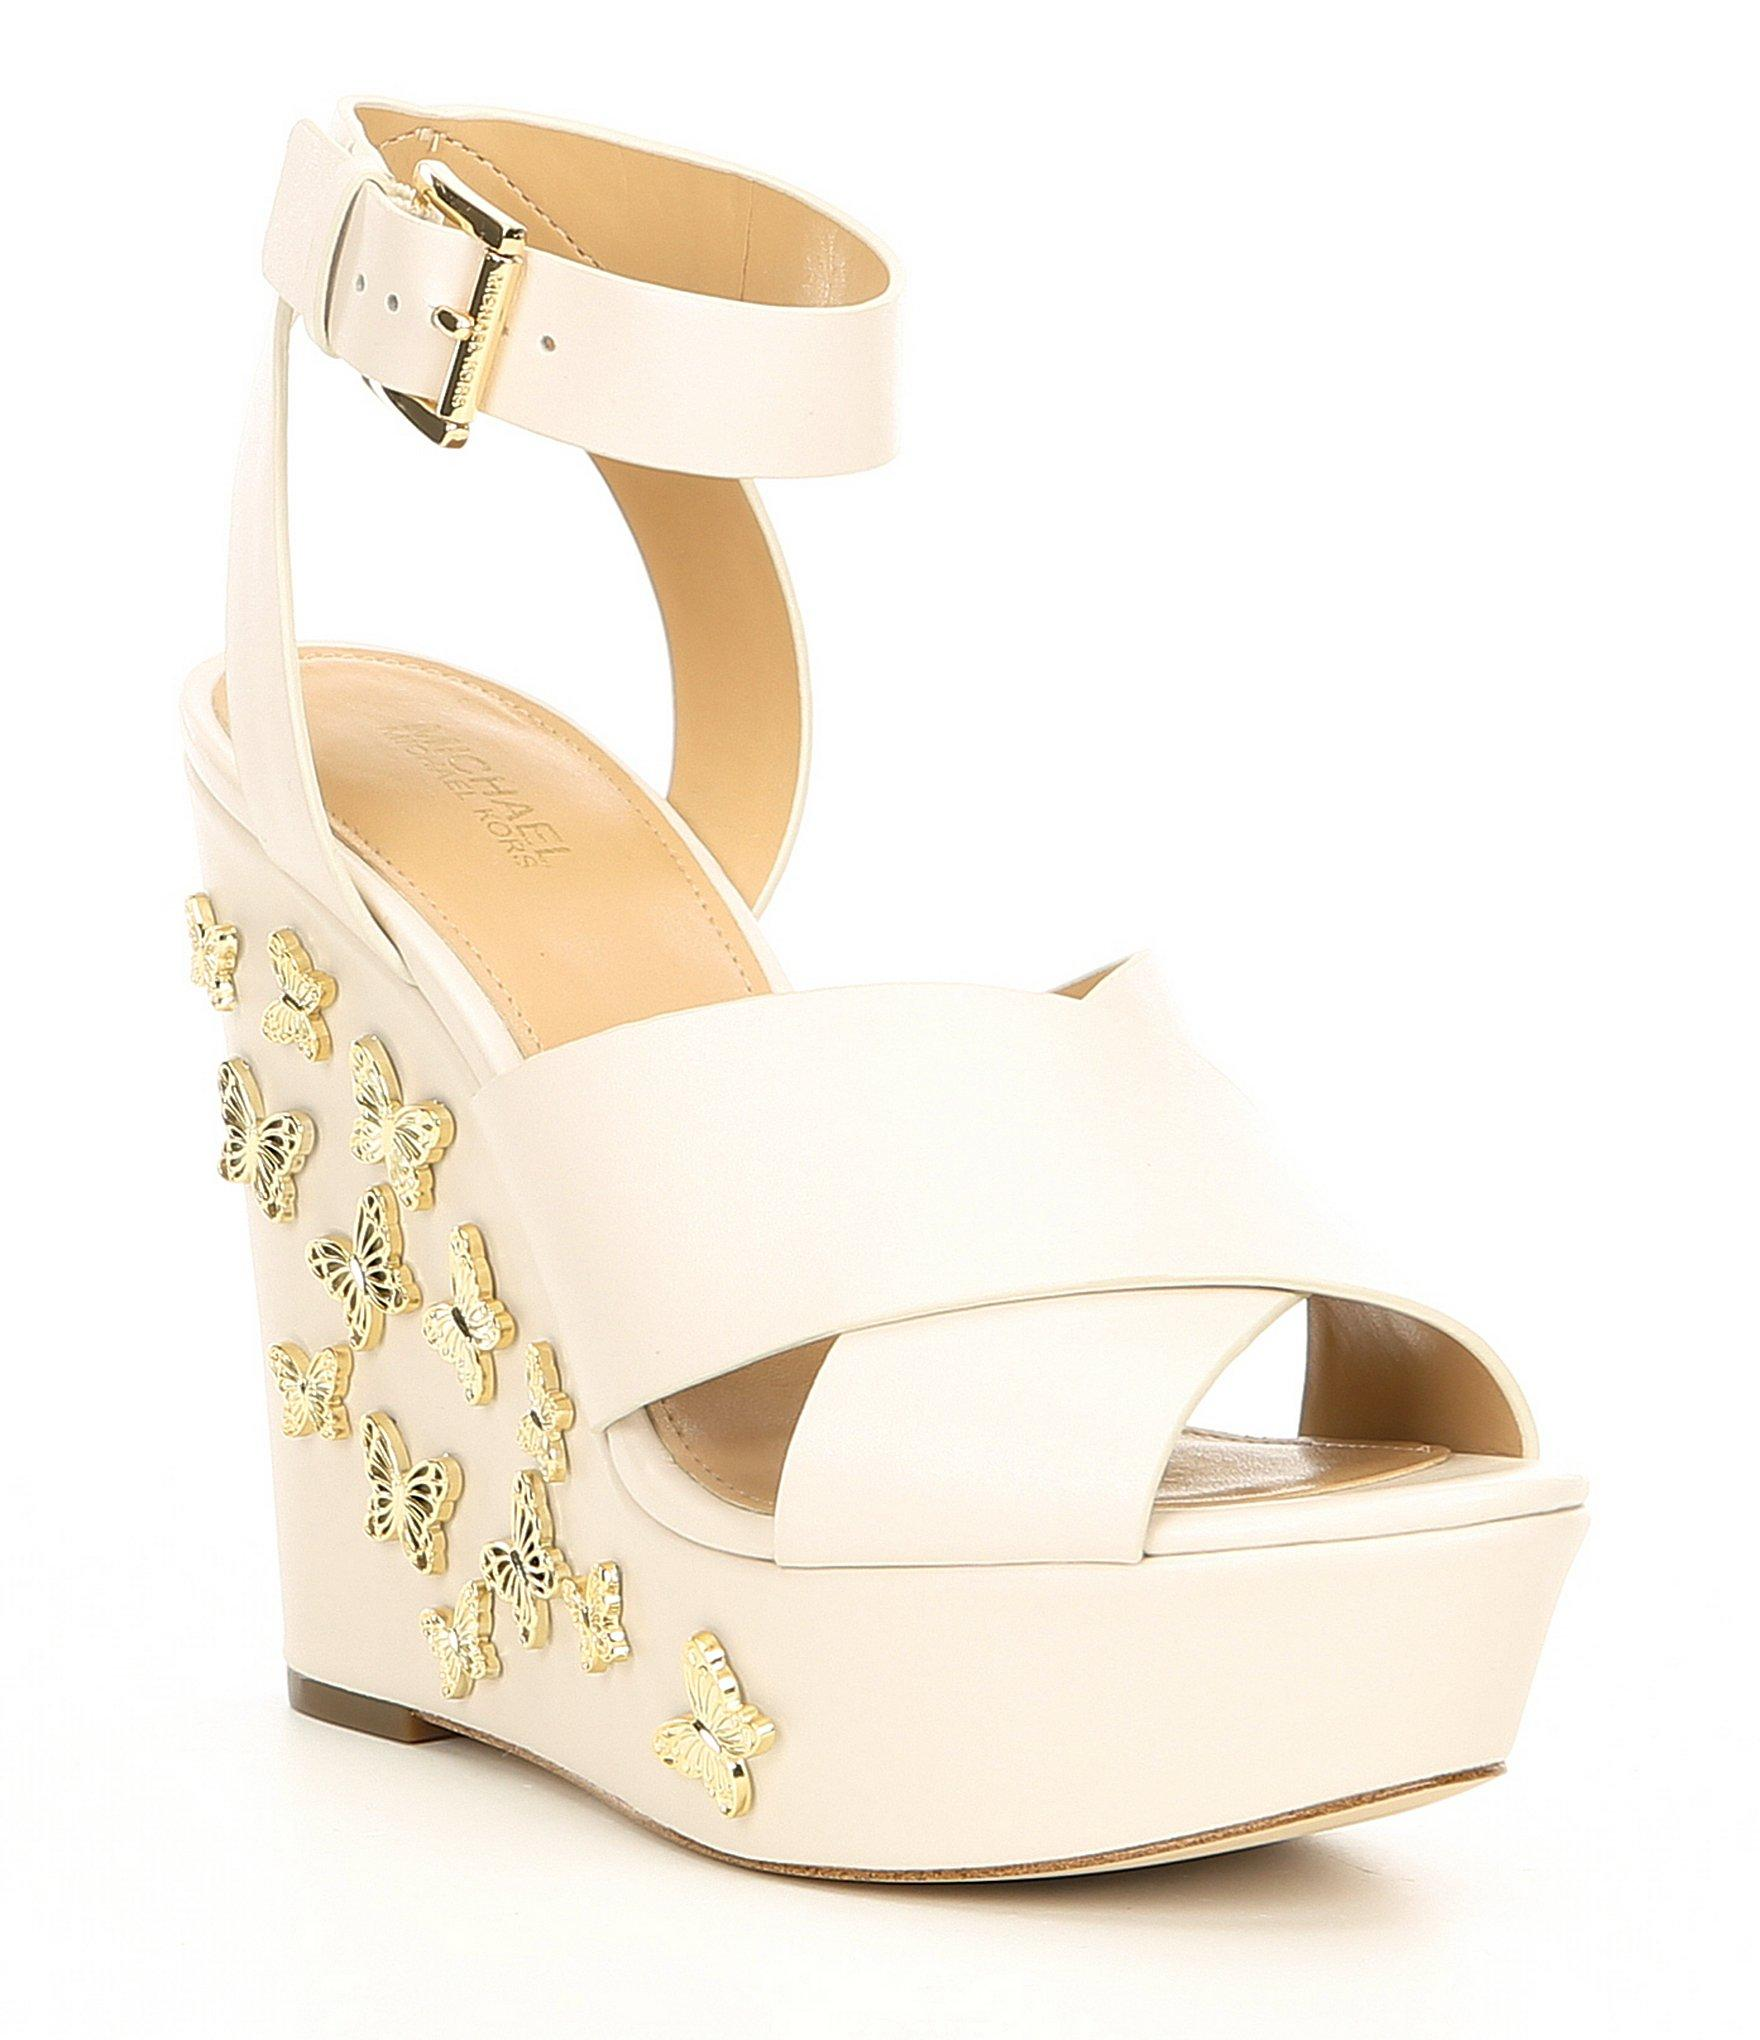 62e2faeacc12 MICHAEL Michael Kors. Women s Natural Lacey Leather   Butterfly Charm Wedge  Sandals